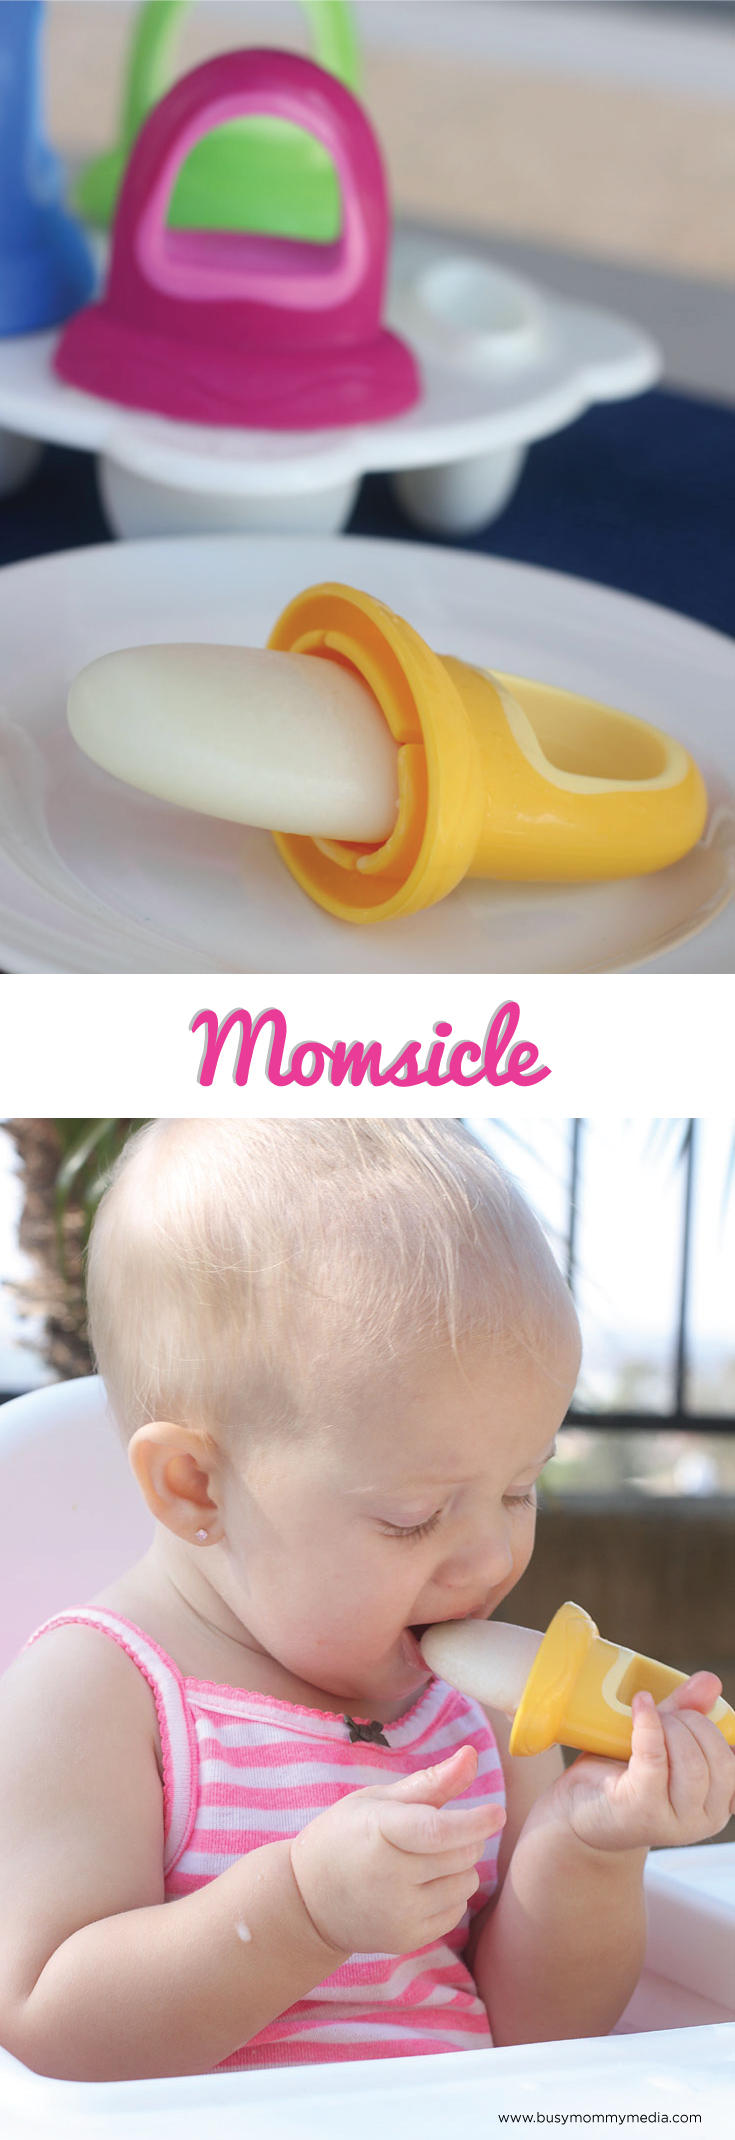 Momsicle - Breastmilk popsicles for babies! These are brilliant!!